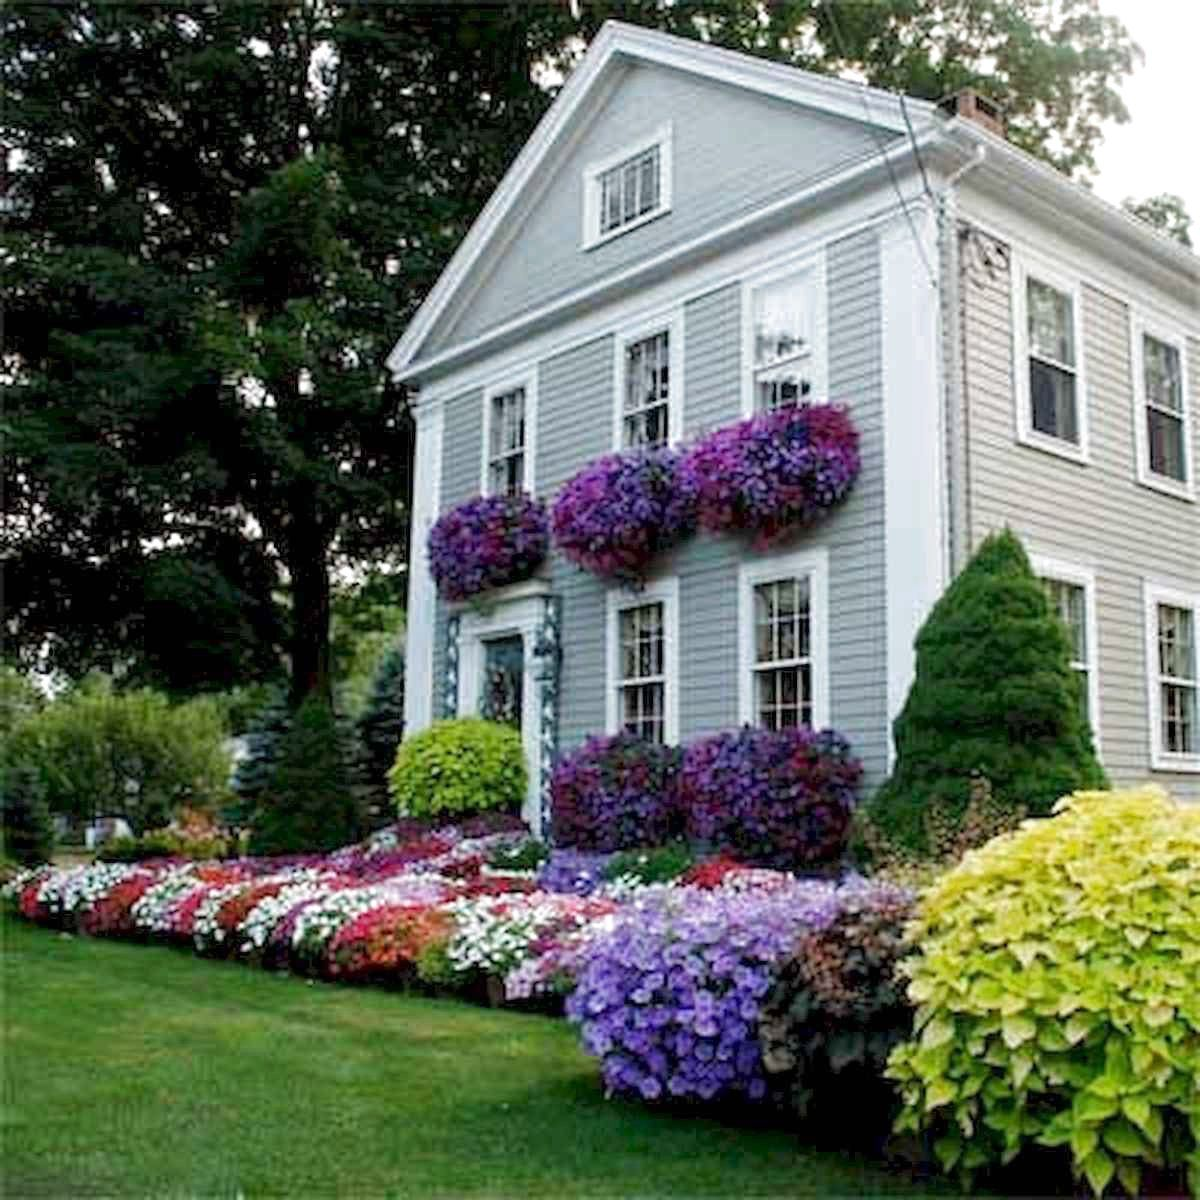 43 Best Front Yard Garden Landscaping Design Ideas And ... on Front Yard Renovation Ideas id=15787